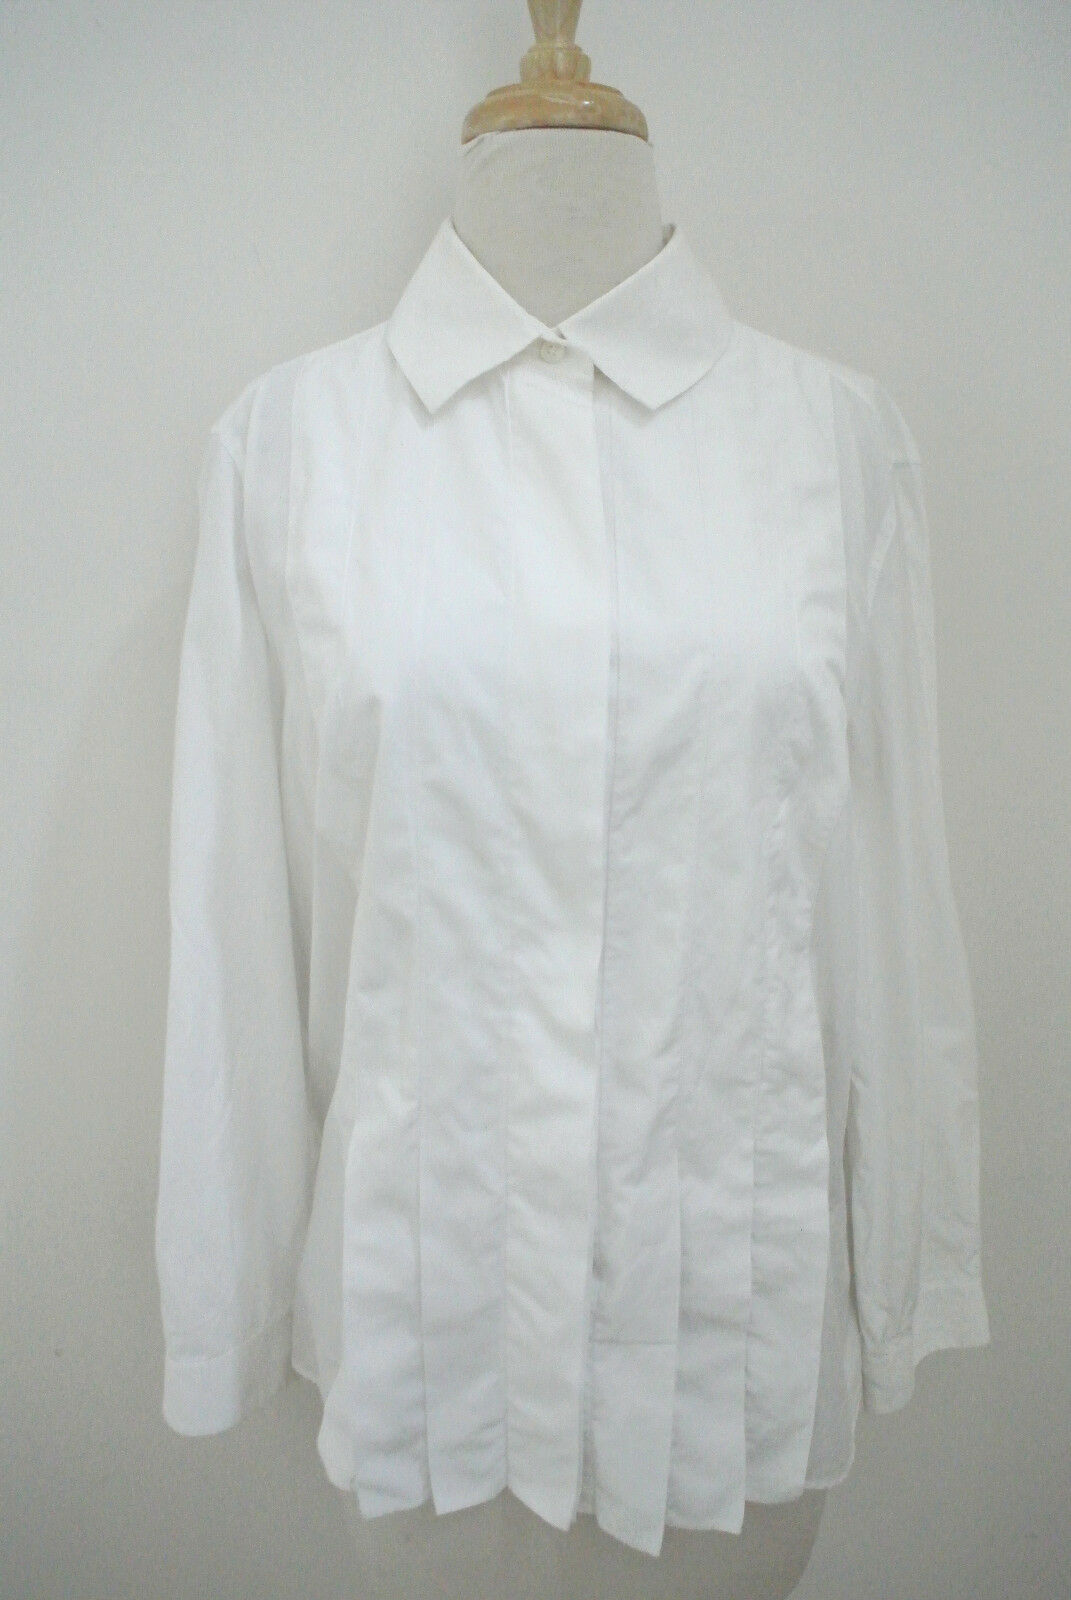 AKRIS Weiß cotton button up shirt F 44 US 12 L pleated front